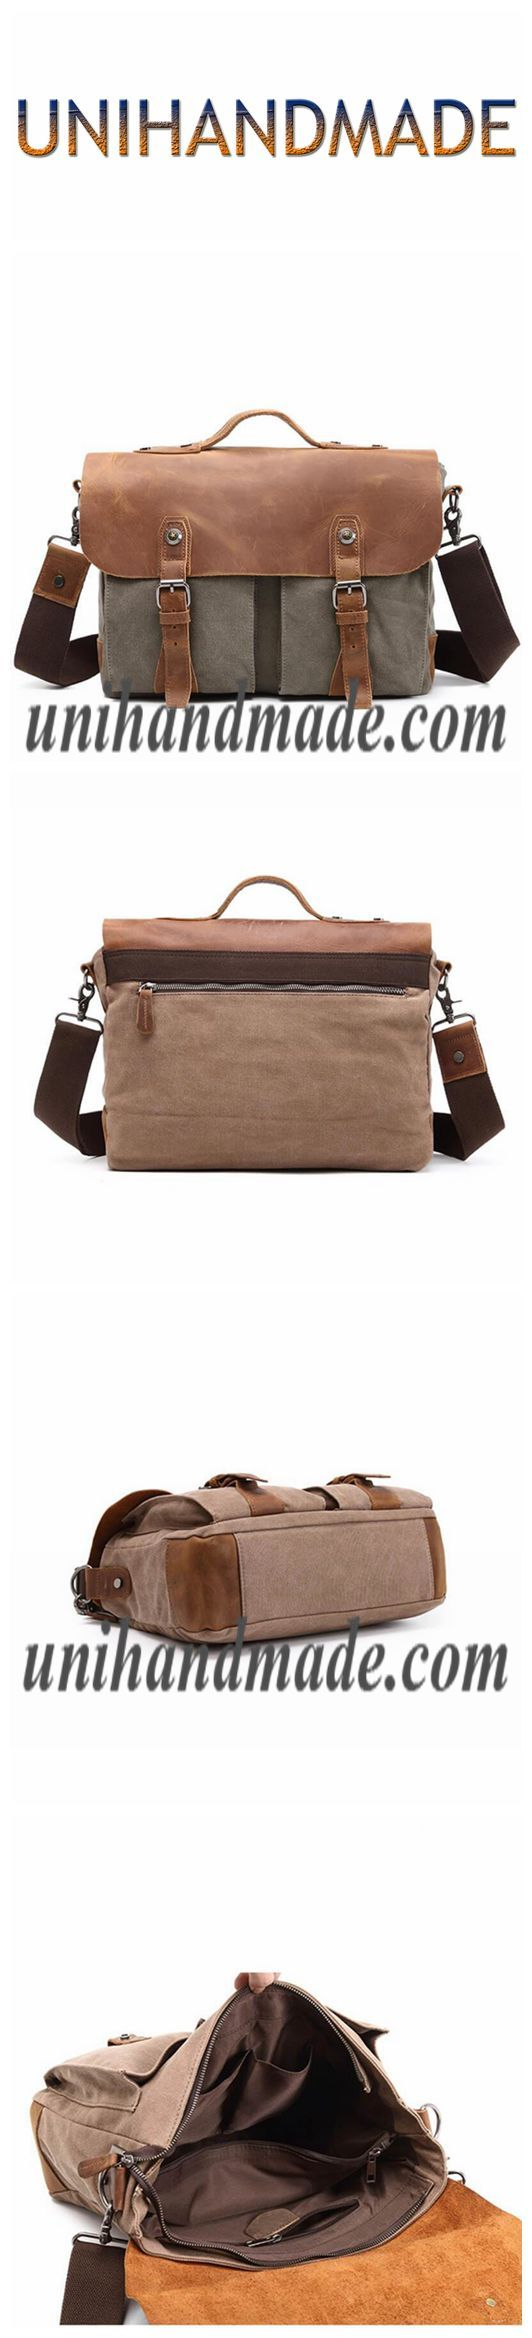 Waxed Canvas With Full Grain Leather Waterproof Messenger Bag 1023